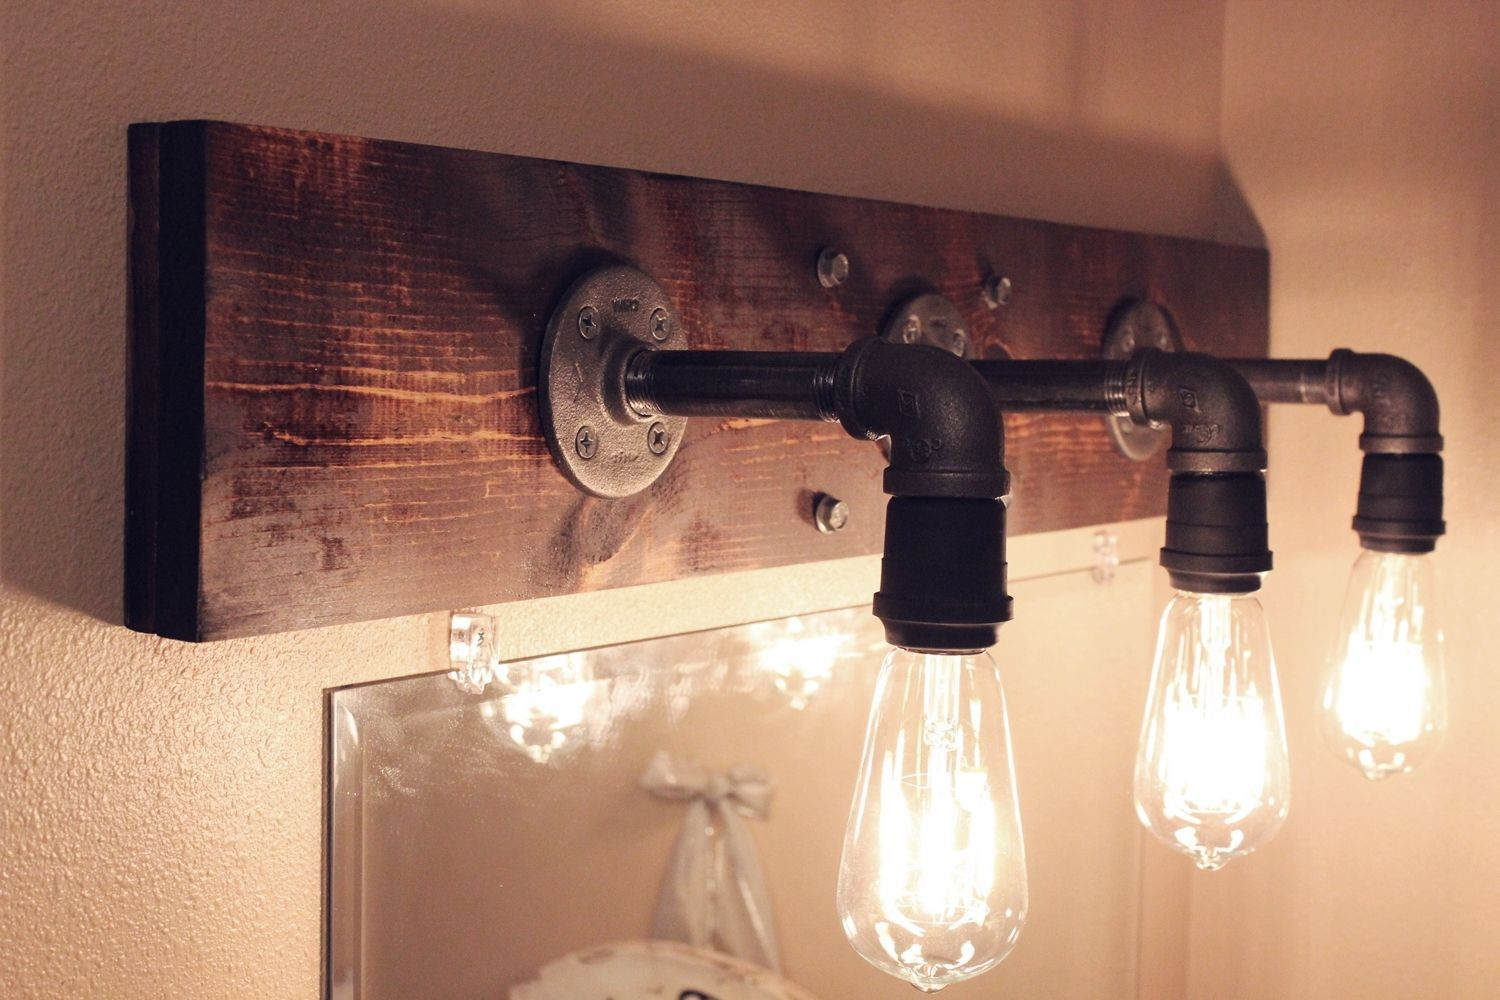 Diy Industrial Bathroom Light Fixtures Diy Bathroom Hacks with regard to sizing 1500 X 1000